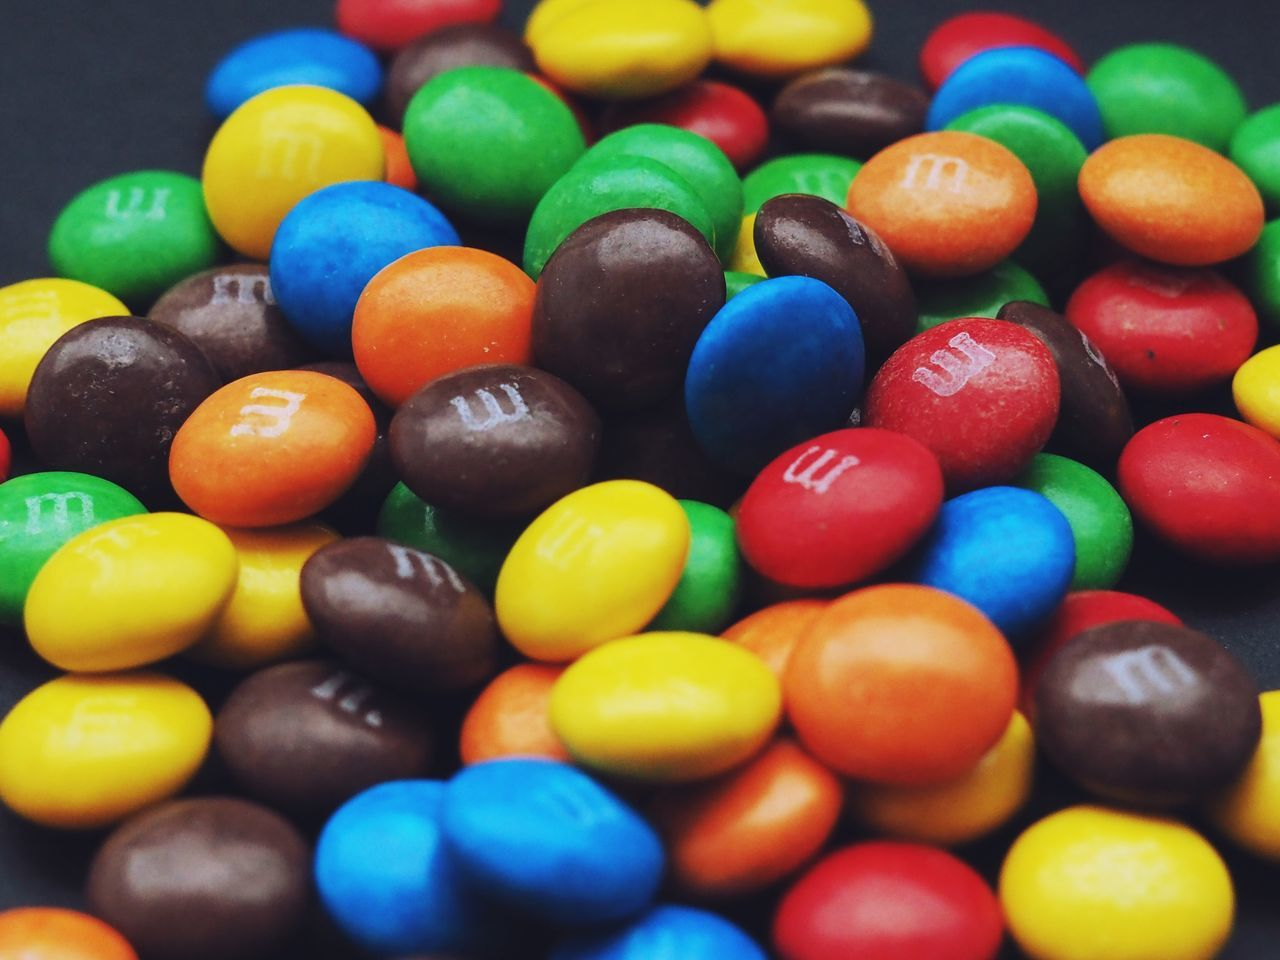 multi colored, sweet food, indulgence, temptation, unhealthy eating, dessert, food and drink, food, still life, colorful, chocolate, indoors, large group of objects, candy, variation, no people, bubble gum, close-up, freshness, ready-to-eat, day